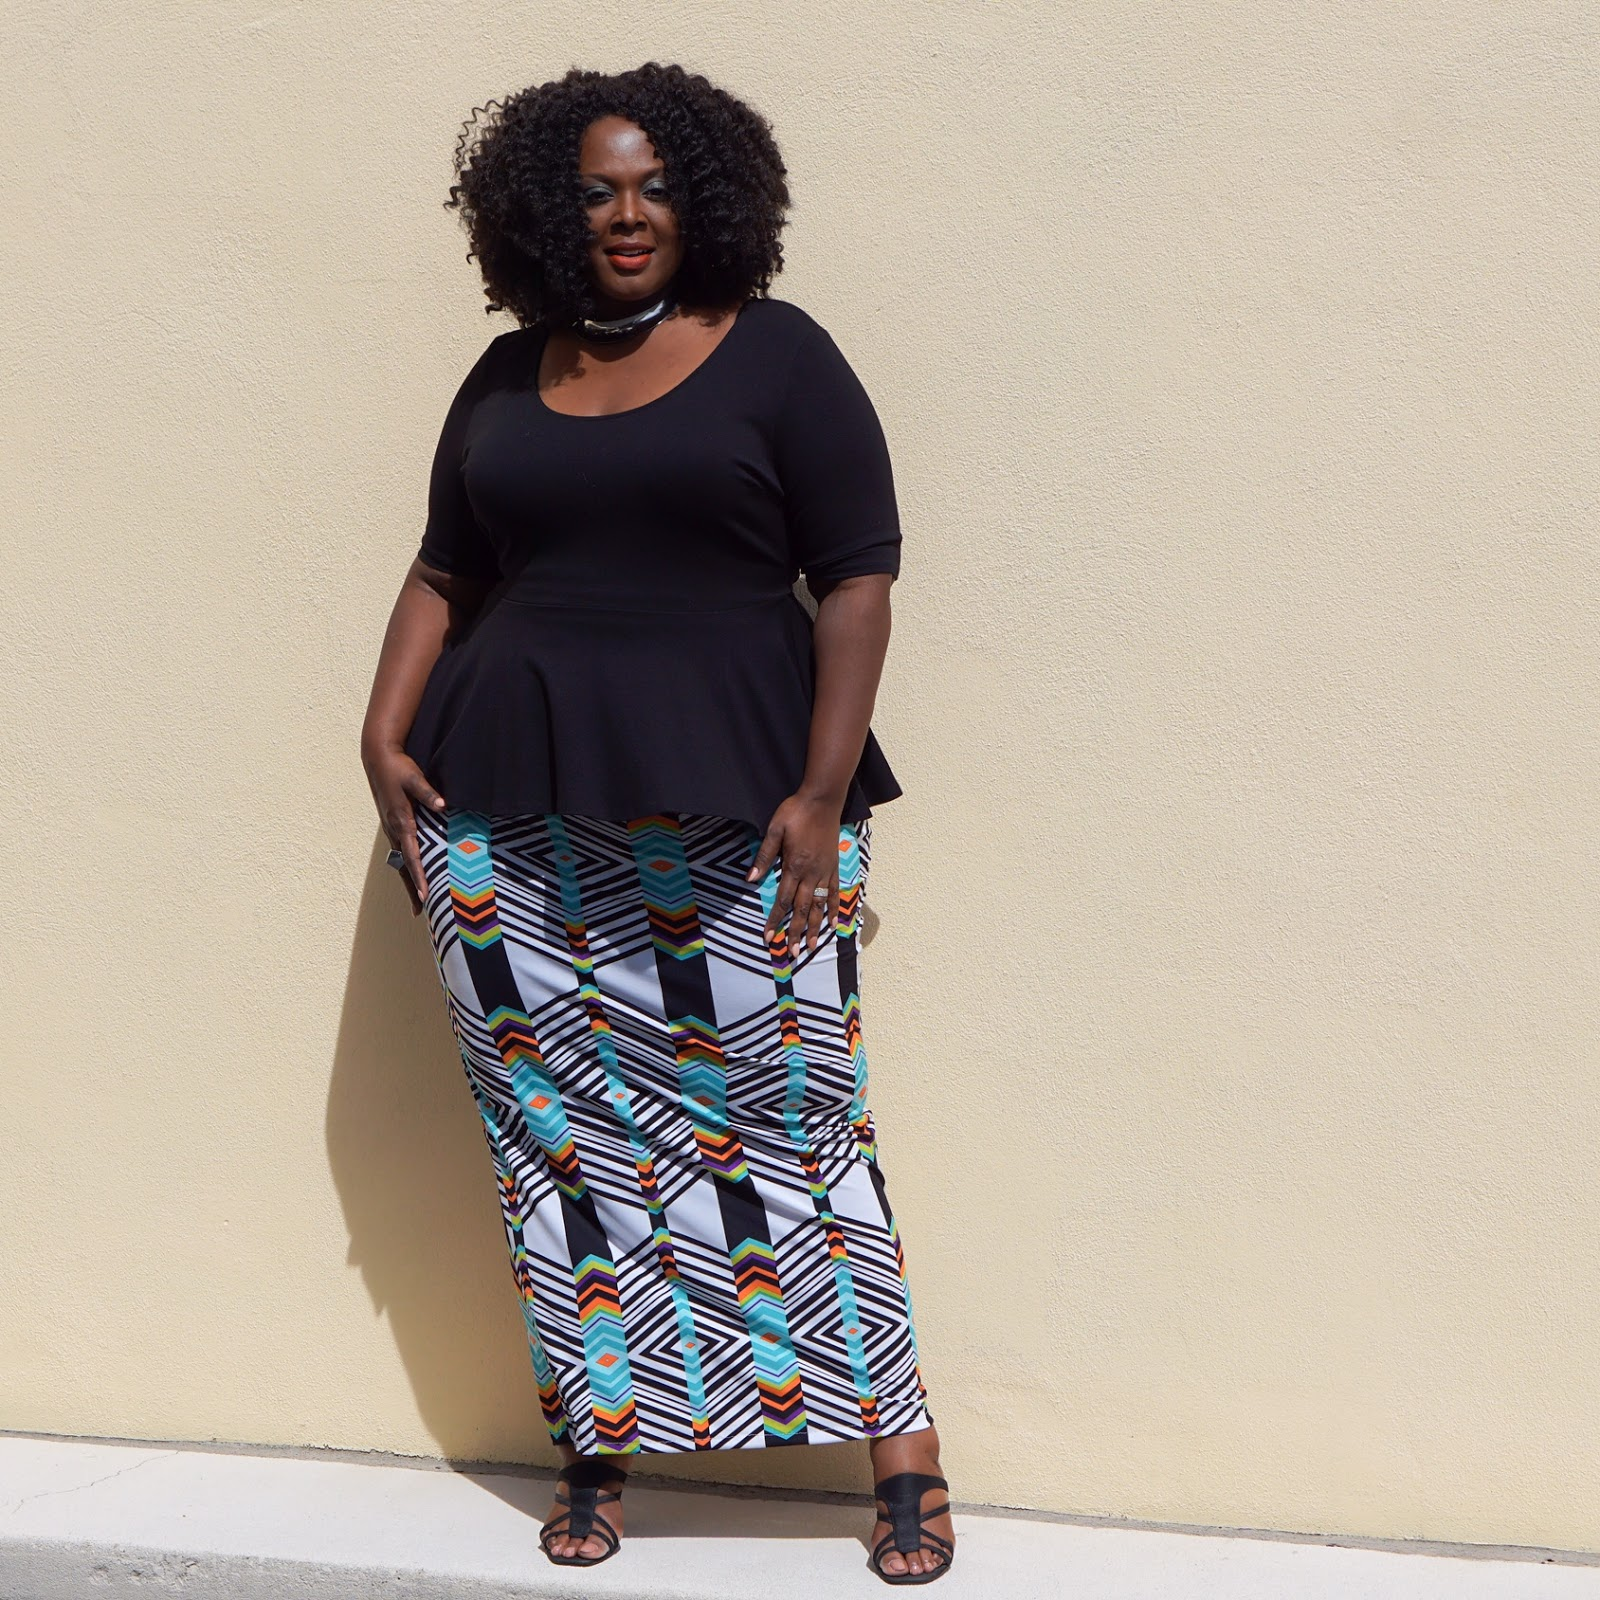 plus size maxi skirt, plus size clothes, plus size skirts, tru diva designs skirts